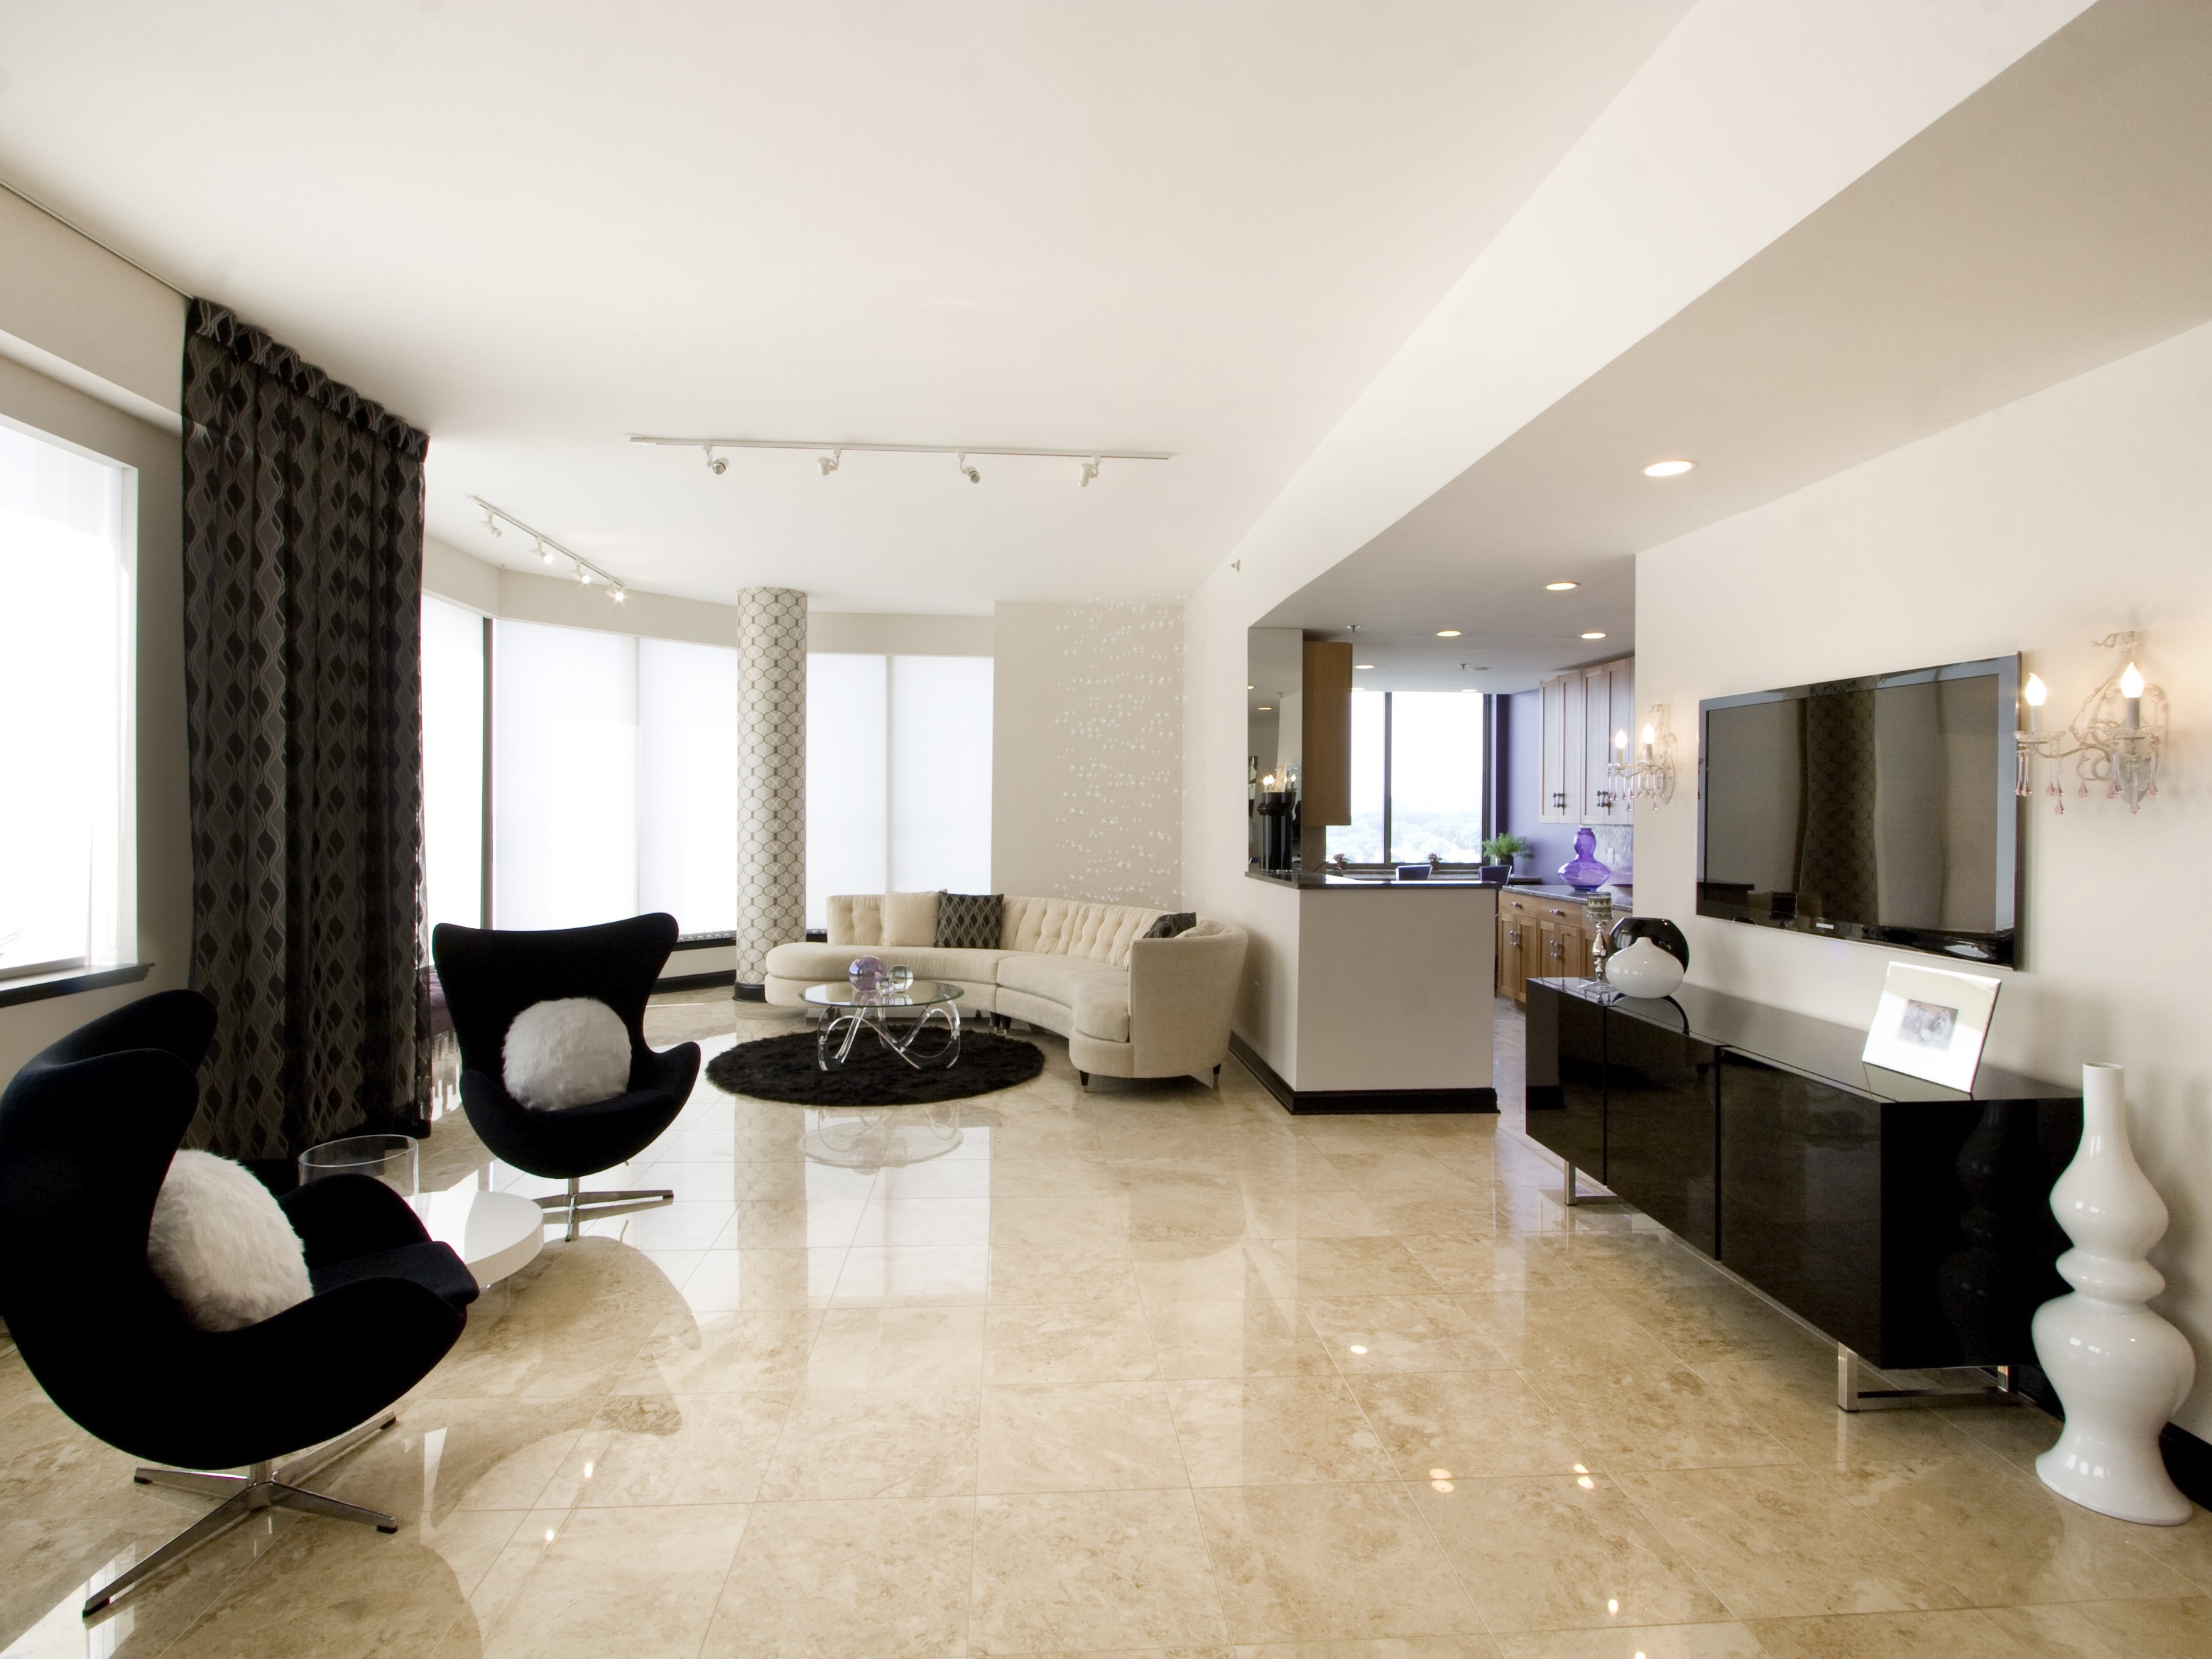 Living Room Marble Flooring For Luxury Nuance (View 10 of 15)